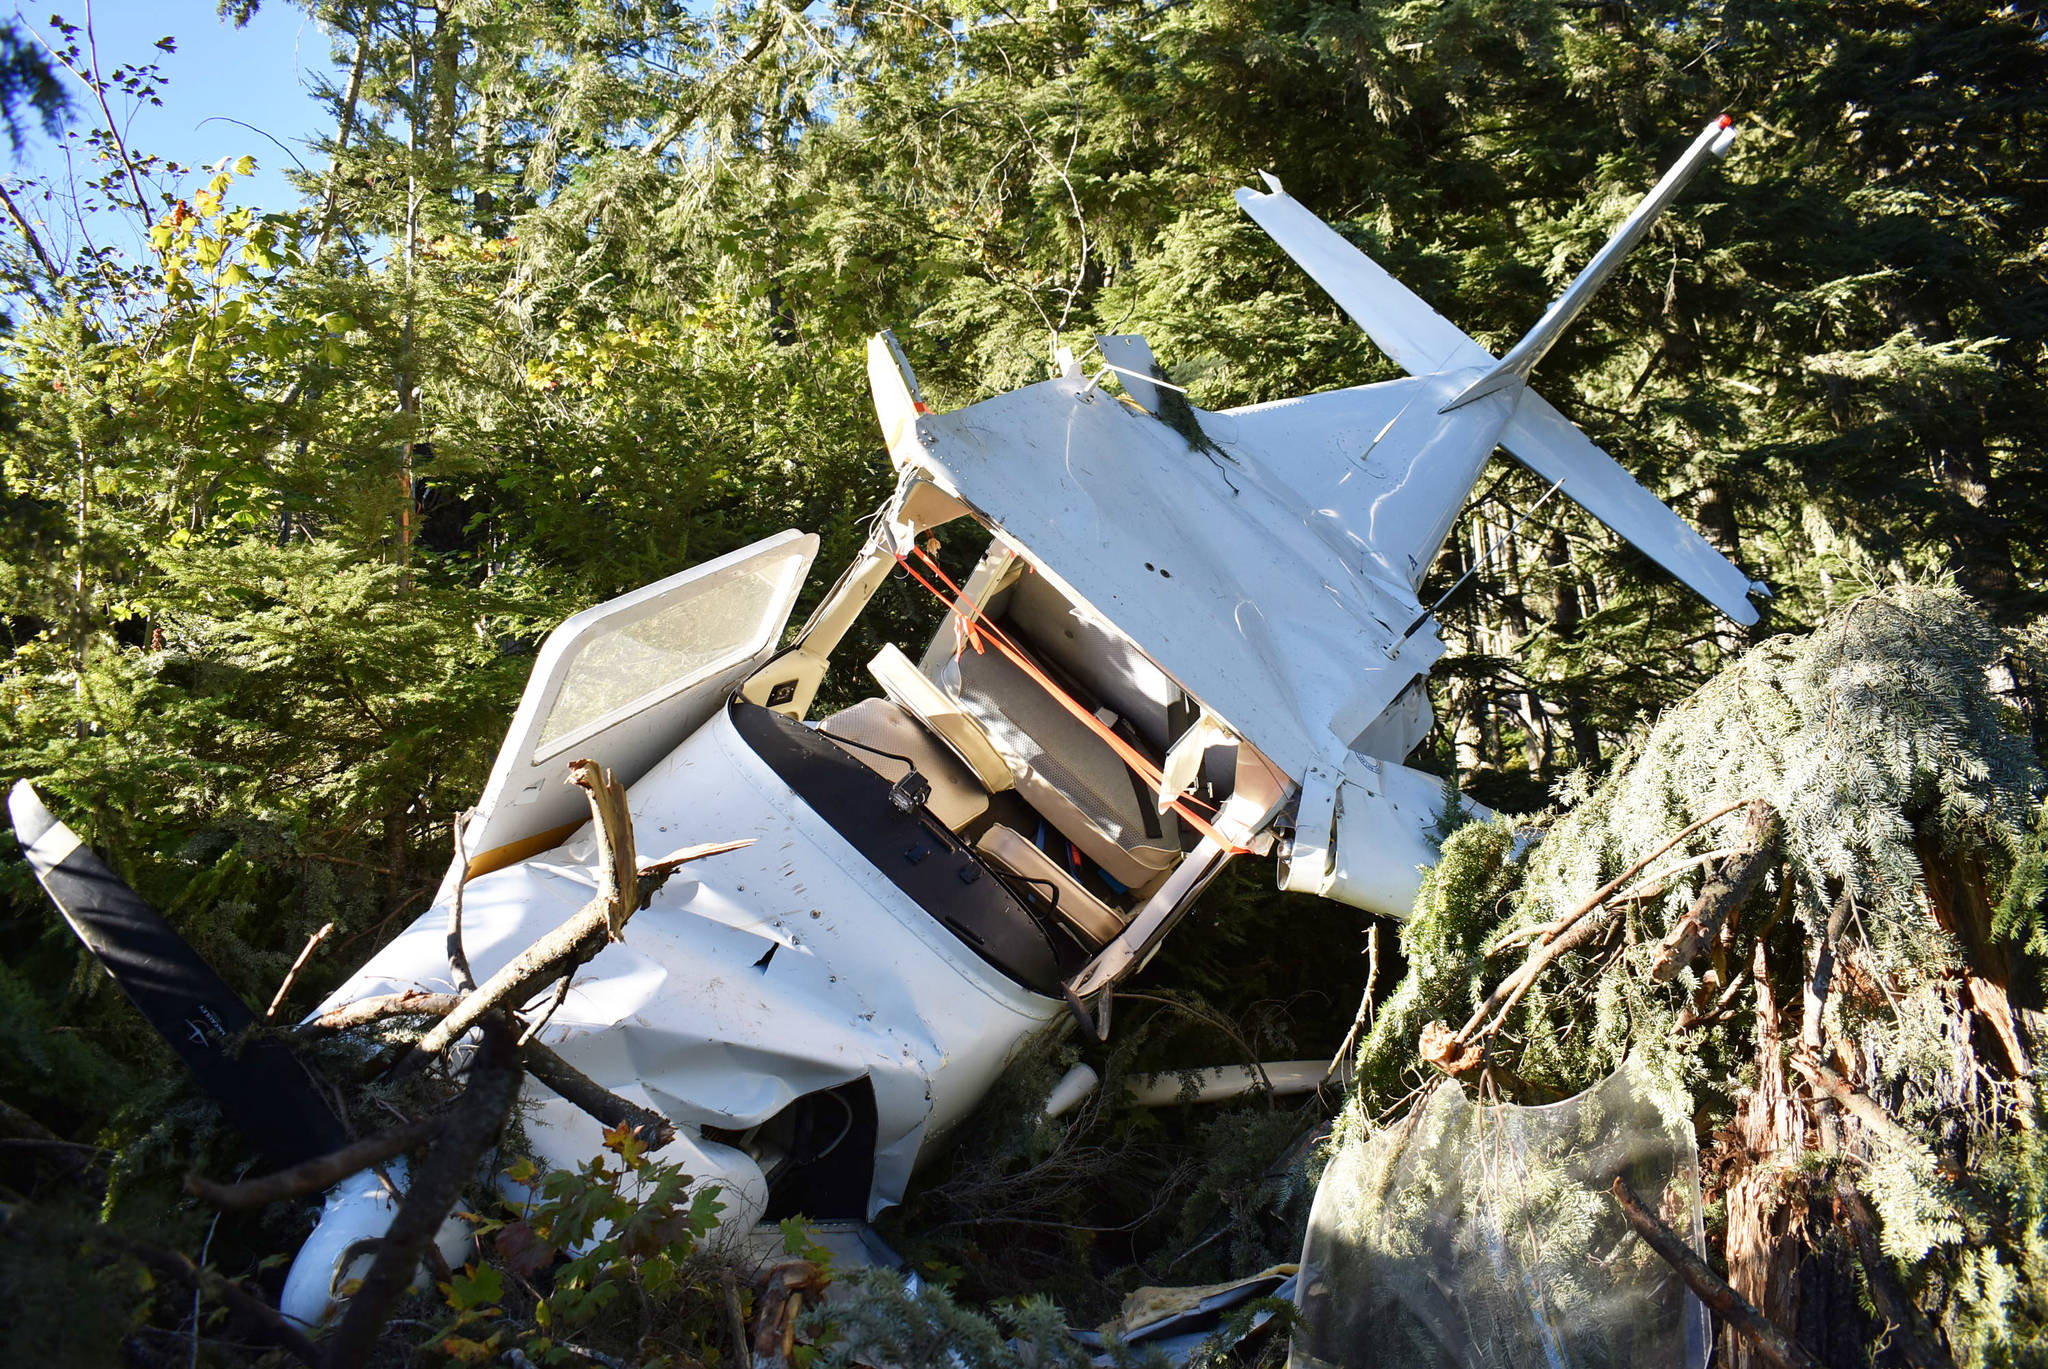 The single-engine Cessna crashed with one person onboard Saturday, Sept. 5 near a forest service road between Hope and Sunshine Valley. (Emelie Peacock/Hope Standard)